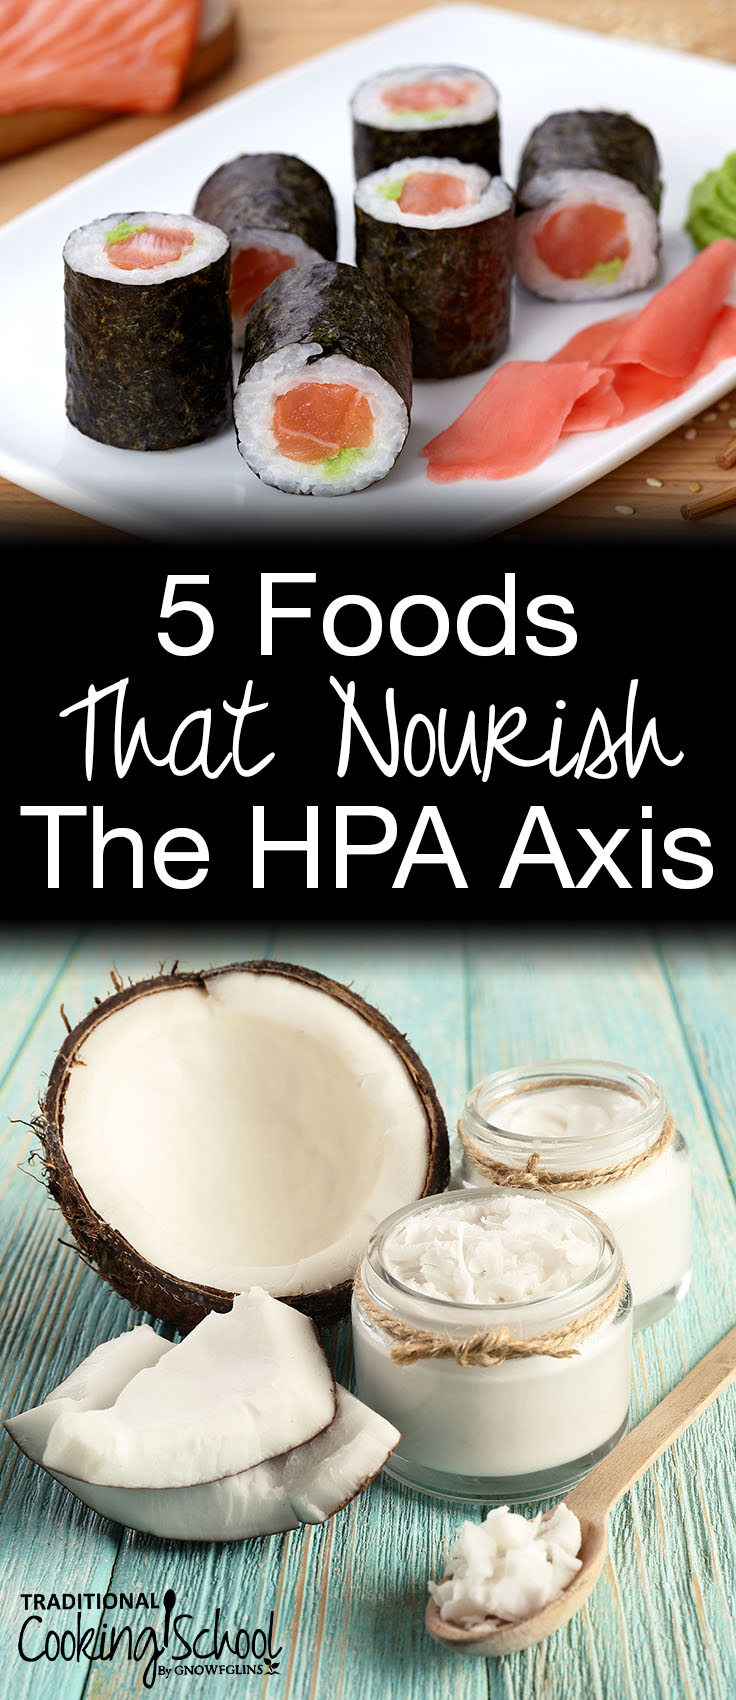 Have you experienced fatigue, insomnia, weight gain, blood sugar imbalance, anxiety, and cravings for sweet or salty foods? A nutrient-dense diet is exactly what sufferers of HPA axis dysfunction (formerly called adrenal fatigue) need! It is possible to find healing through diet with these 5 foods that nourish the HPA axis!